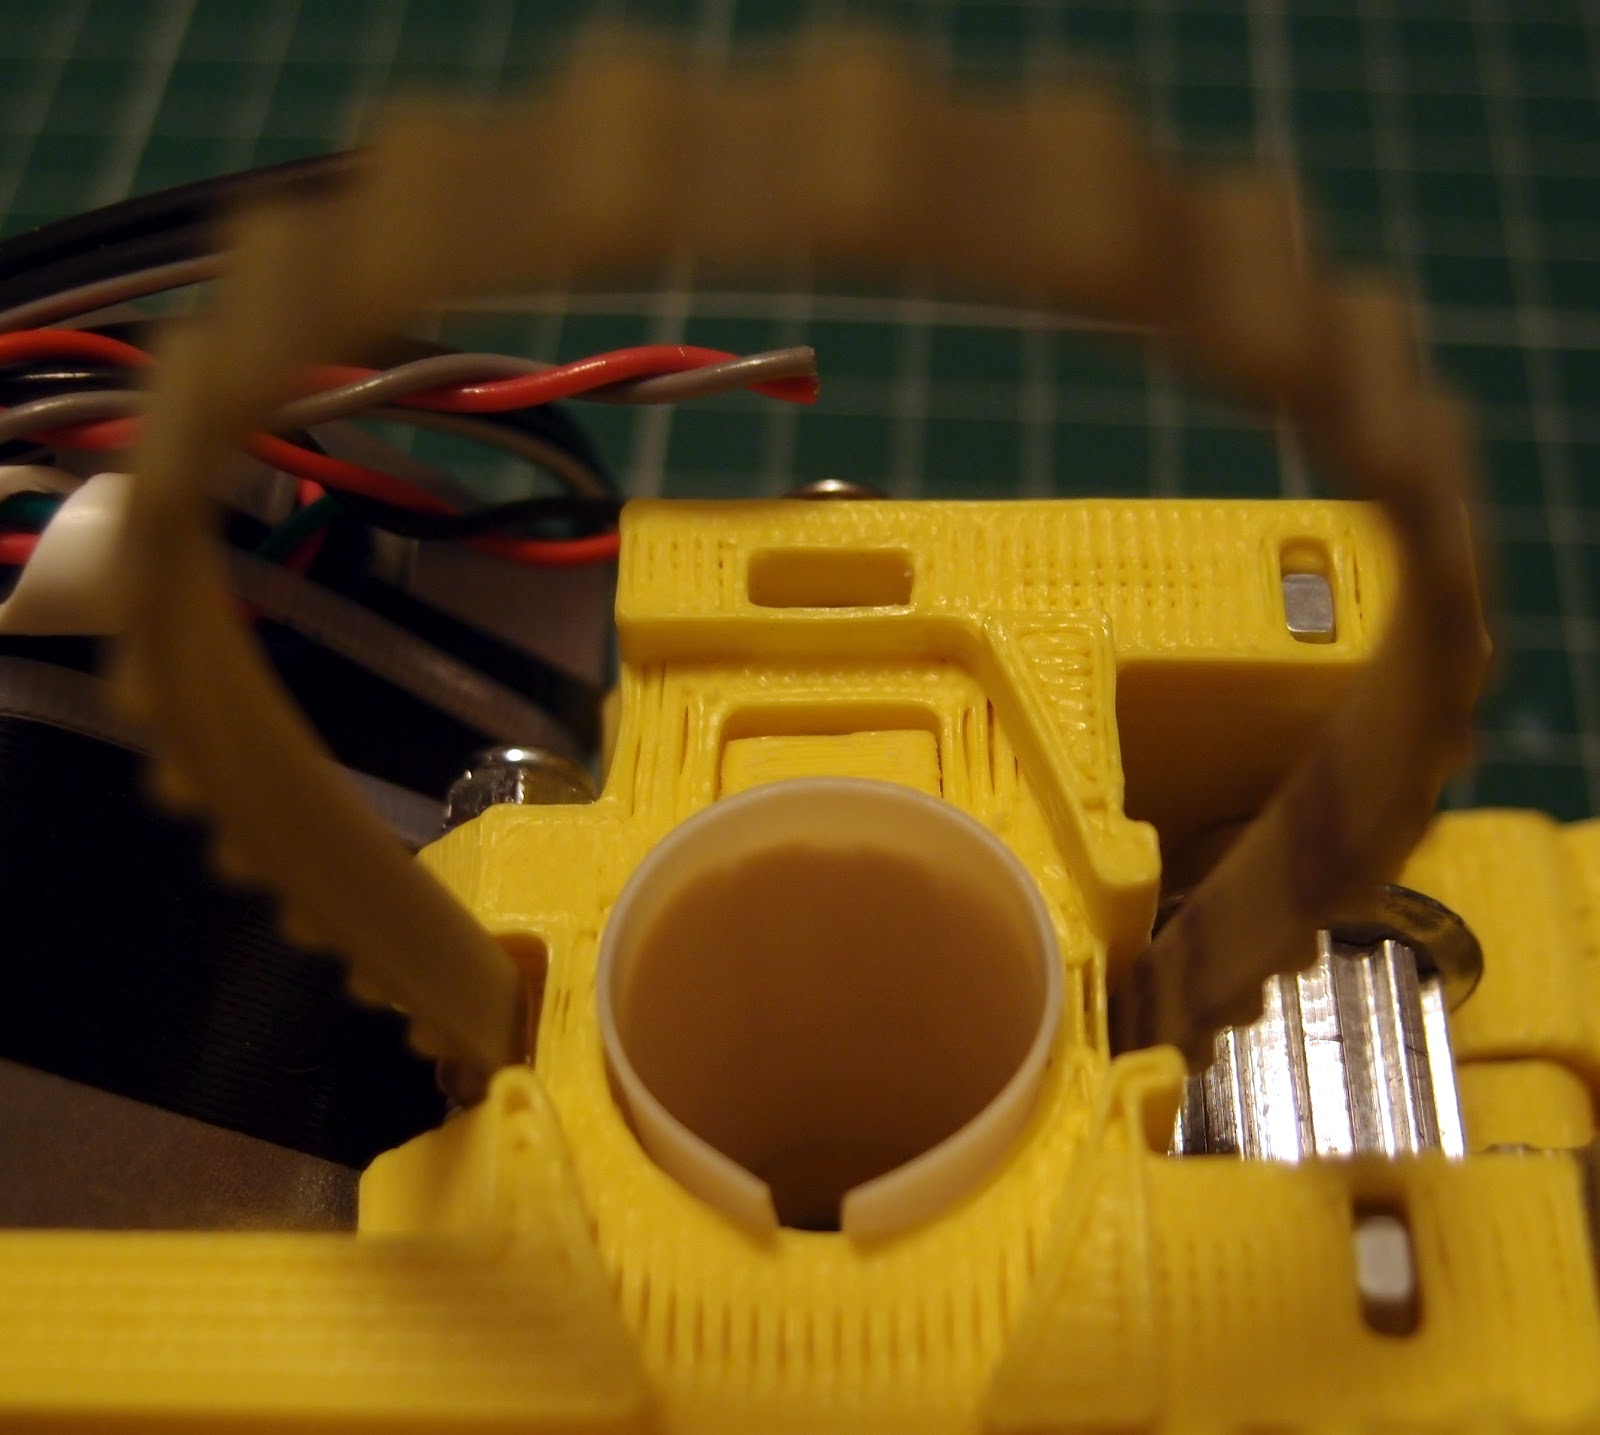 Universal Paste extruder - Ceramic, Food and Real Chocolate 3D Printing...